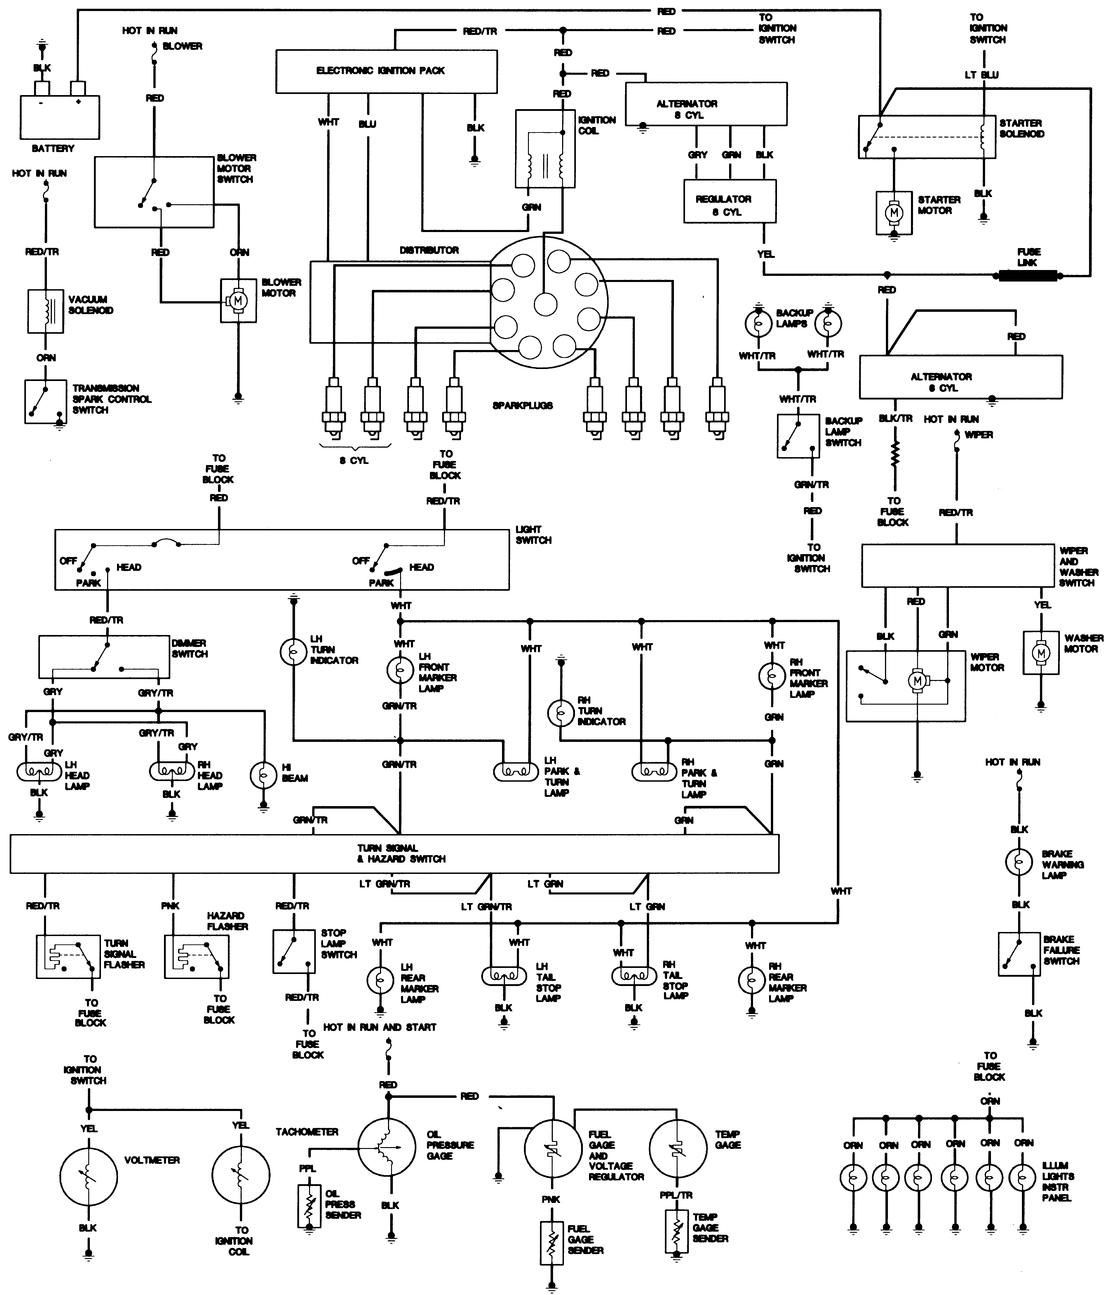 86 cj7 engine wiring wiring diagram load jeep cj engine wiring diagram 86 cj7 engine wiring [ 1111 x 1295 Pixel ]